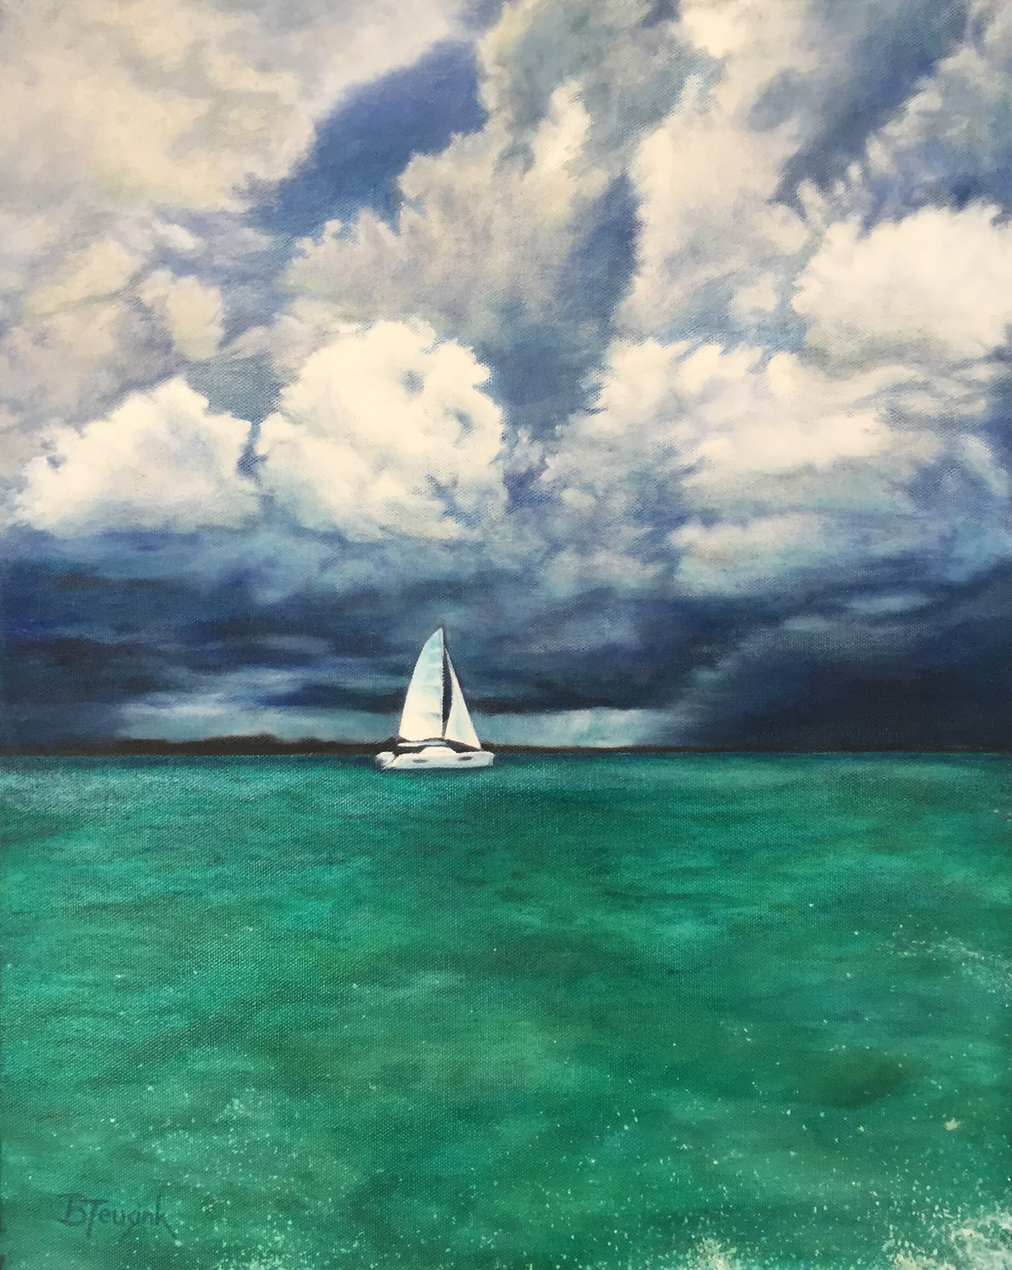 """Painting """"Ahead of the Storm"""" by Barbara Teusink"""